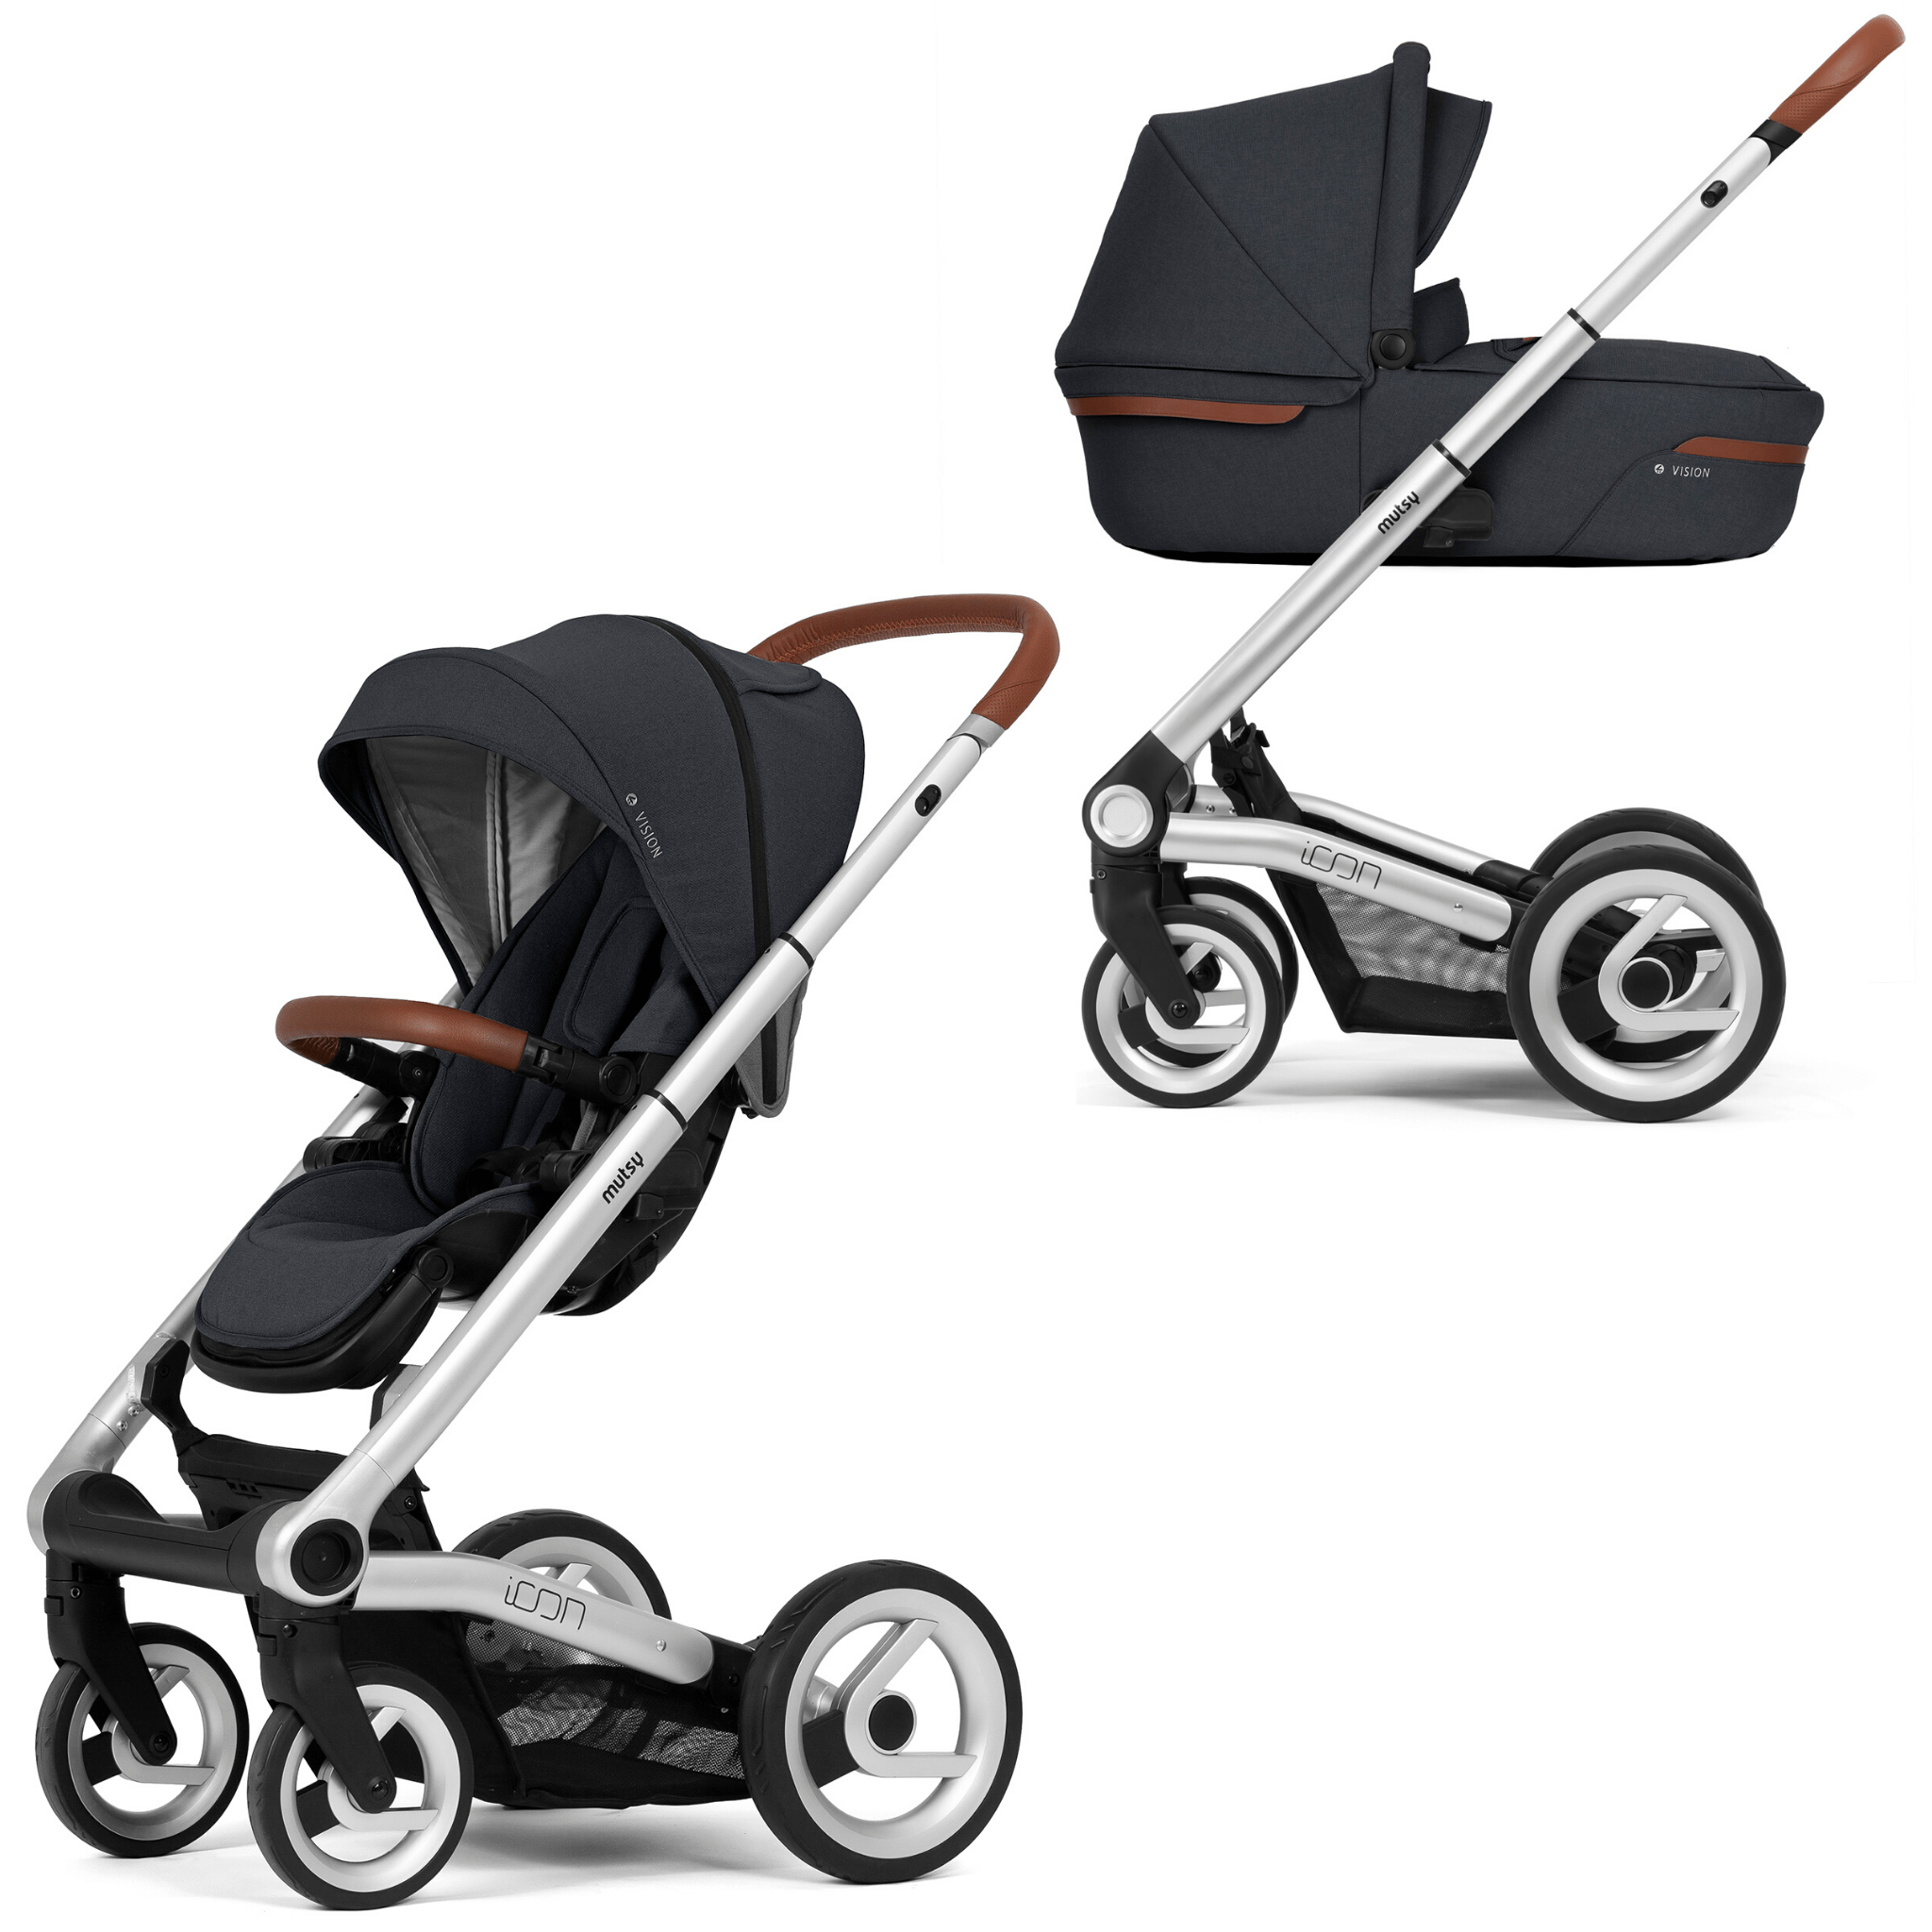 Mutsy Icon Stroller with Carrycot - Silver Frame